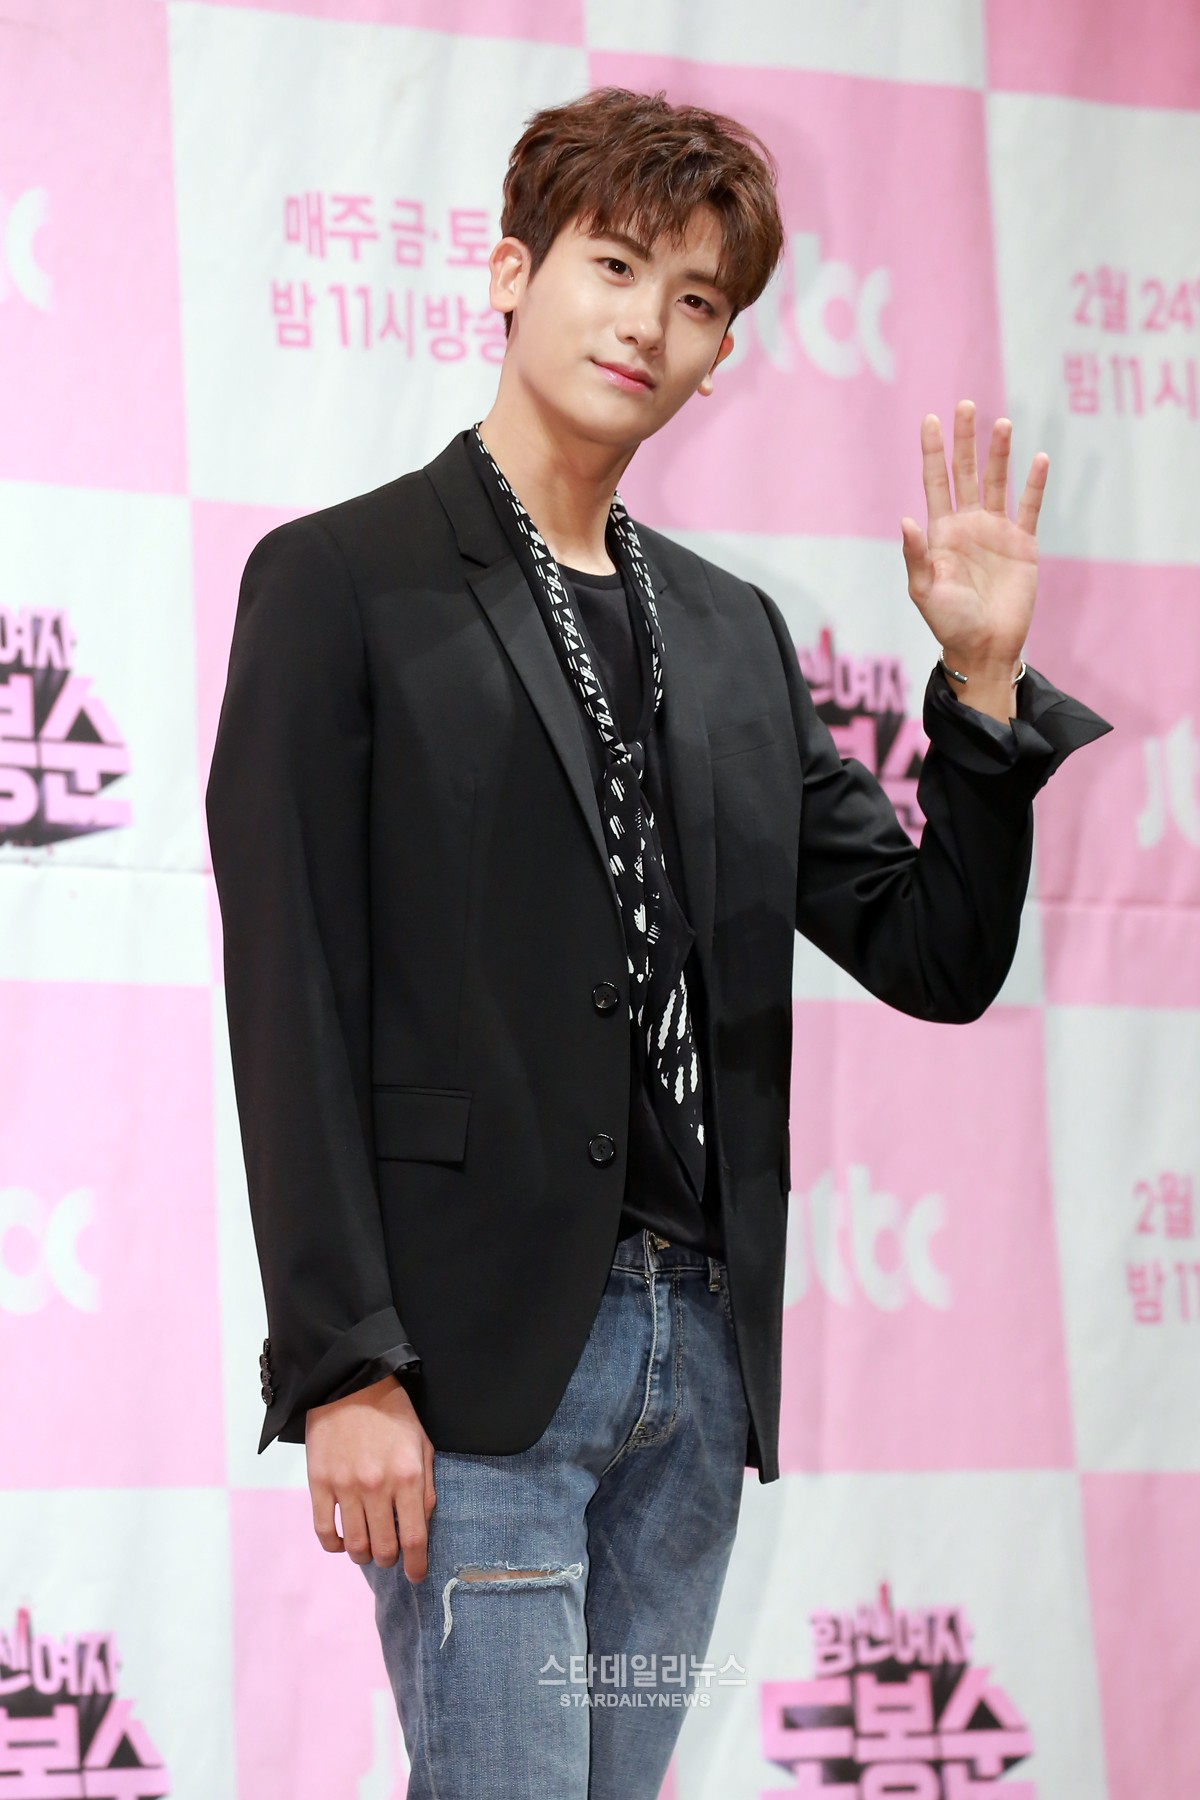 Park Hyung Sik Explains How He Overcame Worries ... Park Hyung Sik Zea